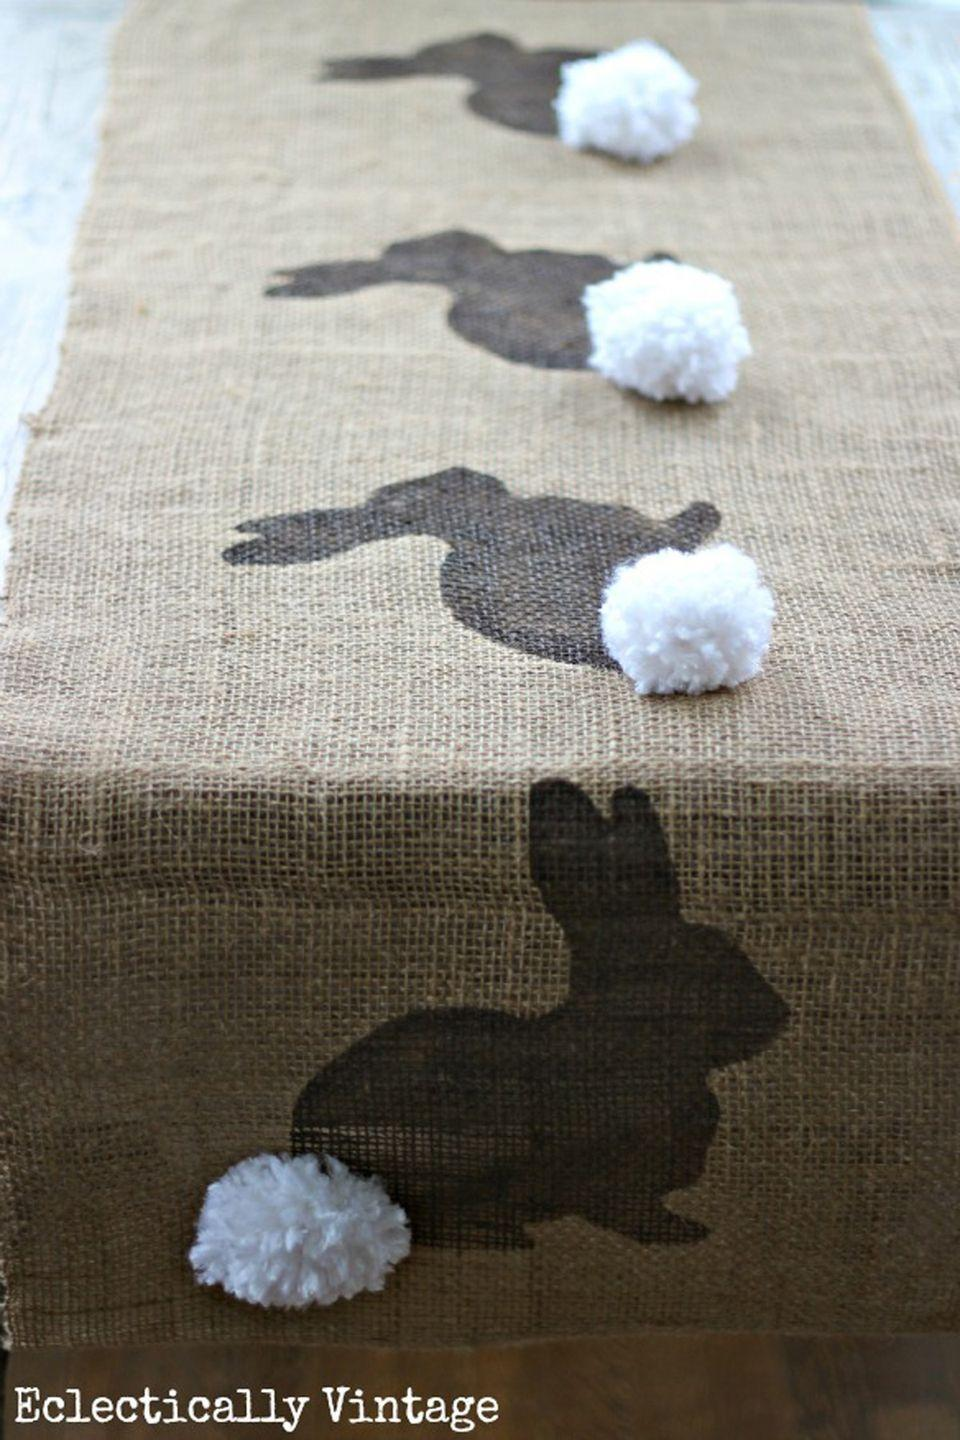 "<p>Delight your friends and family this Easter with this adorable piece for your holiday table. <br><strong>Get the tutorial at <a href=""http://www.kellyelko.com/2013/03/burlap-bunny-table-runner/"" rel=""nofollow noopener"" target=""_blank"" data-ylk=""slk:Kelly Elko"" class=""link rapid-noclick-resp"">Kelly Elko</a>.<br></strong></p><p><a class=""link rapid-noclick-resp"" href=""https://www.amazon.com/FELIZEST-Weddings-Table-Runners-Decorations-Decorate/dp/B07YNMPBM7/ref=sr_1_2_sspa?tag=syn-yahoo-20&ascsubtag=%5Bartid%7C10050.g.1652%5Bsrc%7Cyahoo-us"" rel=""nofollow noopener"" target=""_blank"" data-ylk=""slk:SHOP BURLAP RUNNER"">SHOP BURLAP RUNNER</a></p>"